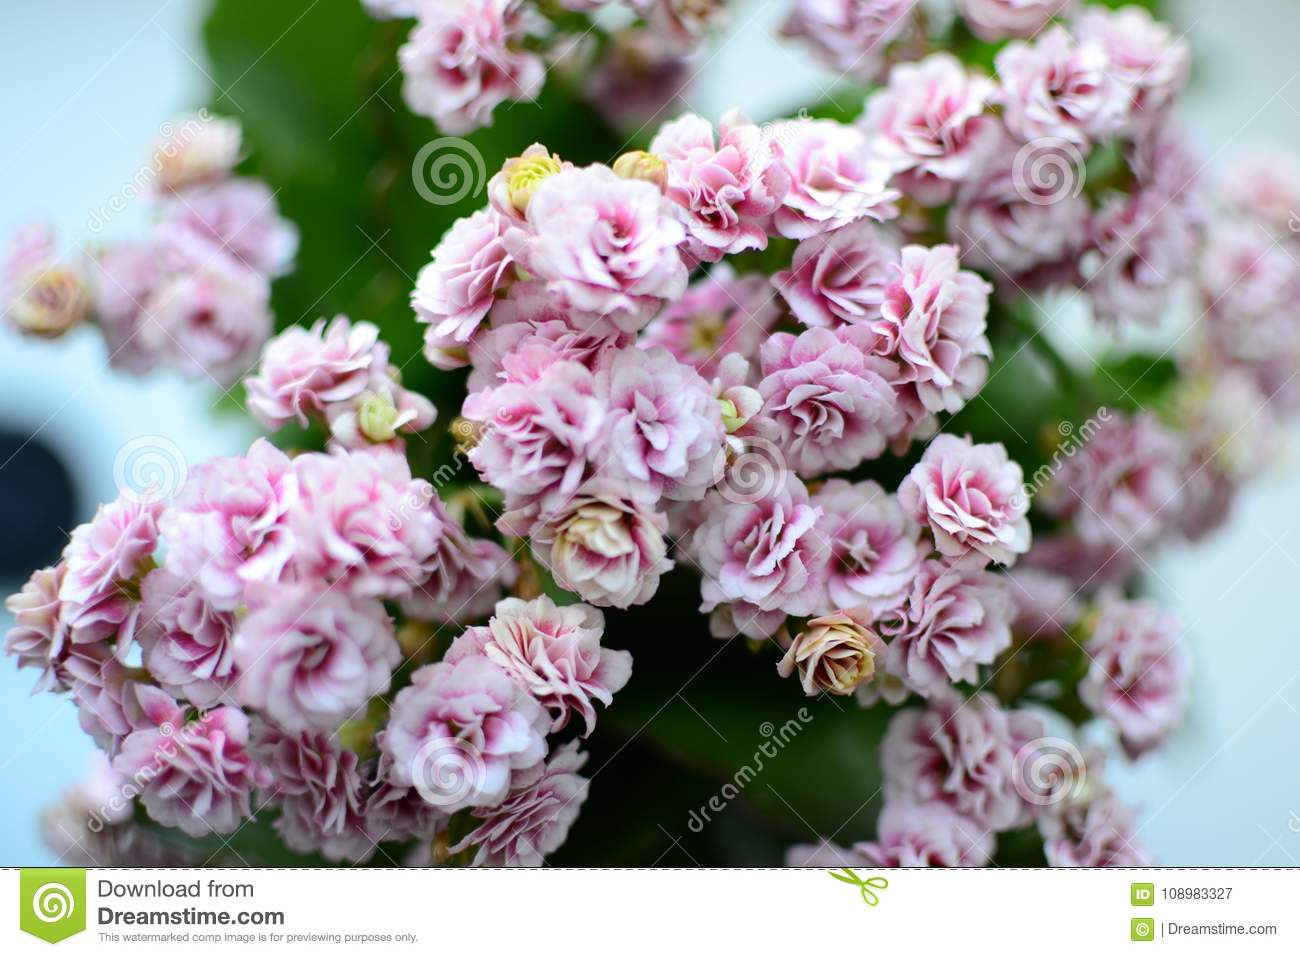 Calanchoe Pink Flower Fresh Spring Flowers At Home Stock Image